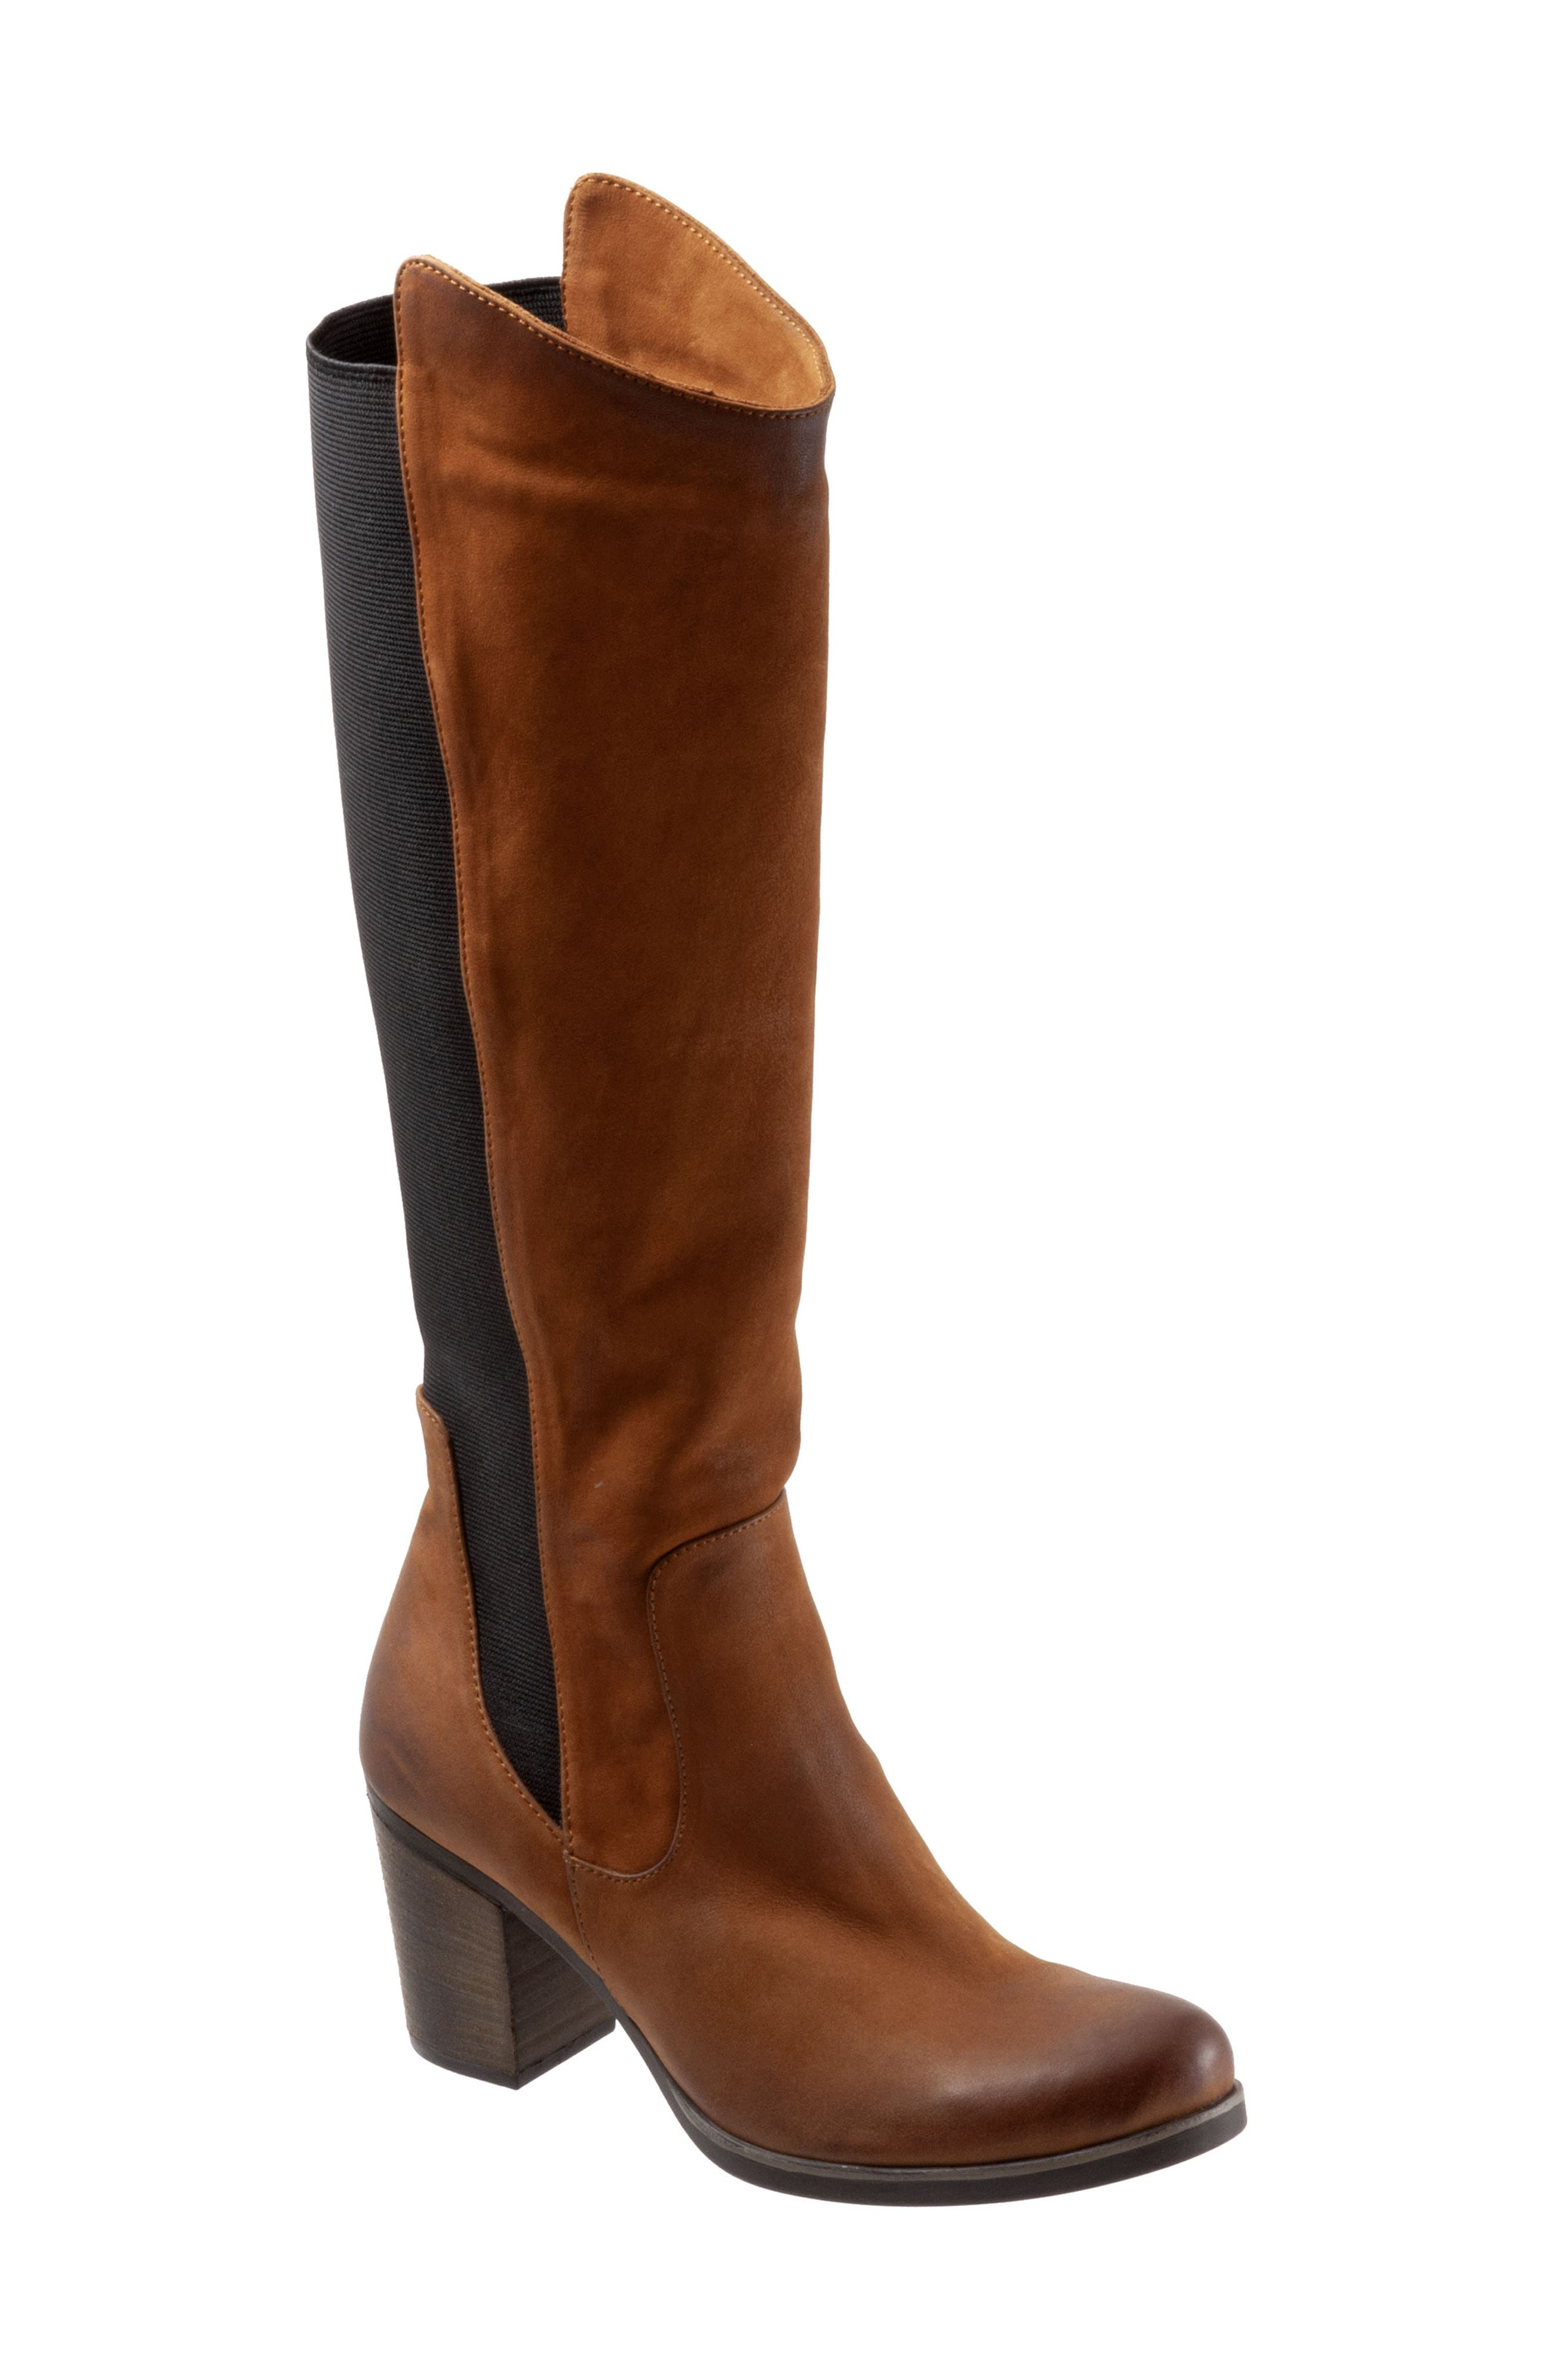 A stretchy elastic panel ensures a flexible custom fit on a chic knee-high boot elevated by a chunky stacked heel and fit with a cushy footbed. Style Name: Bueno Walt Knee High Boot (Women). Style Number: 5878569. Available in stores.